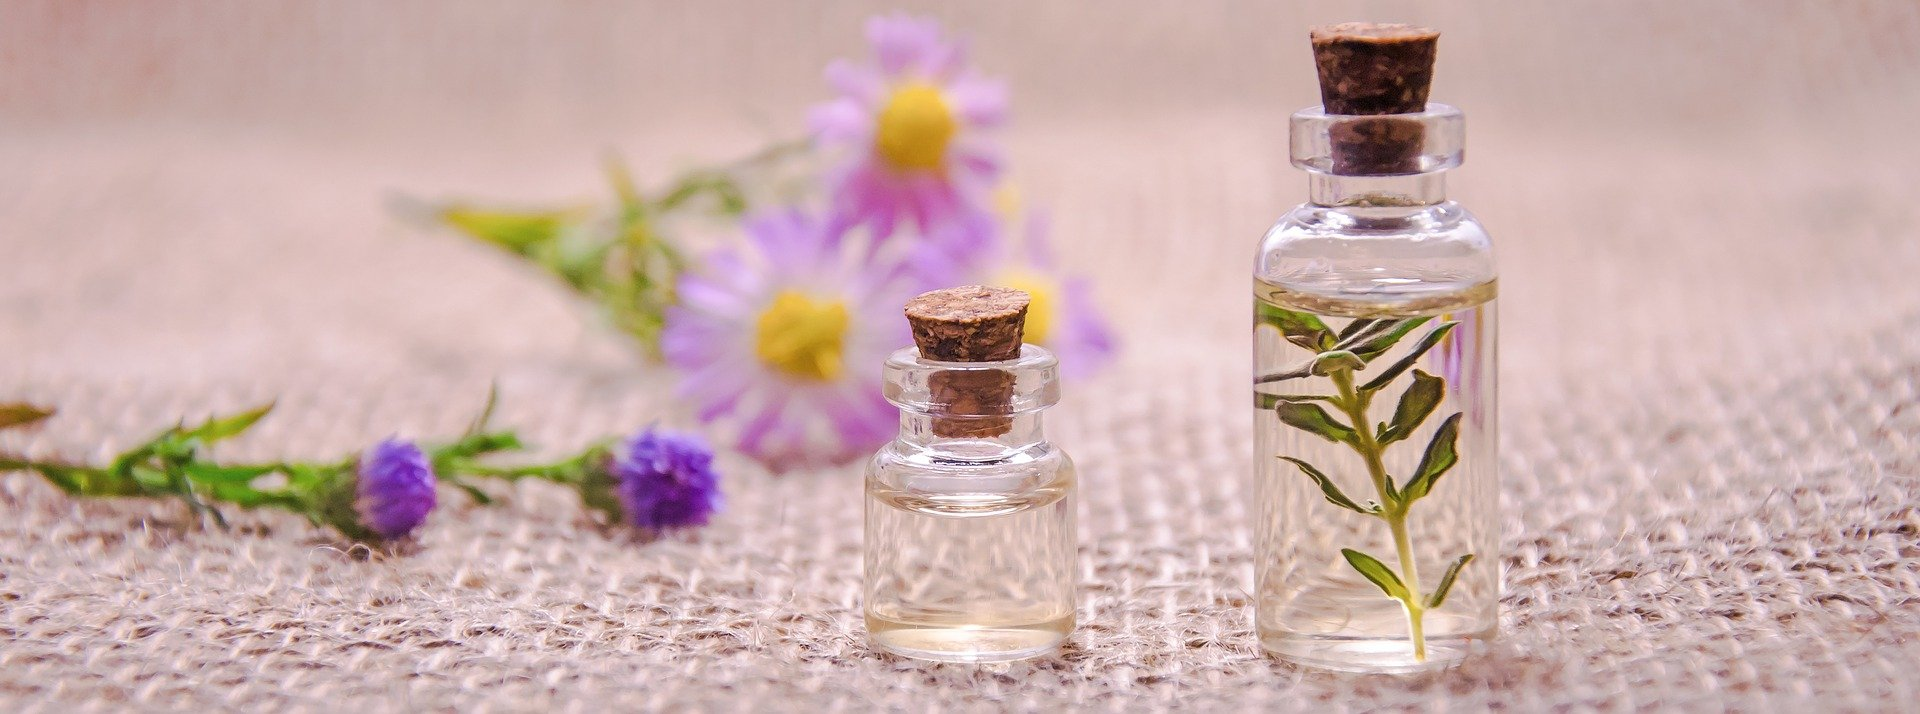 Using Essential Oils Topically: A Basic Guide